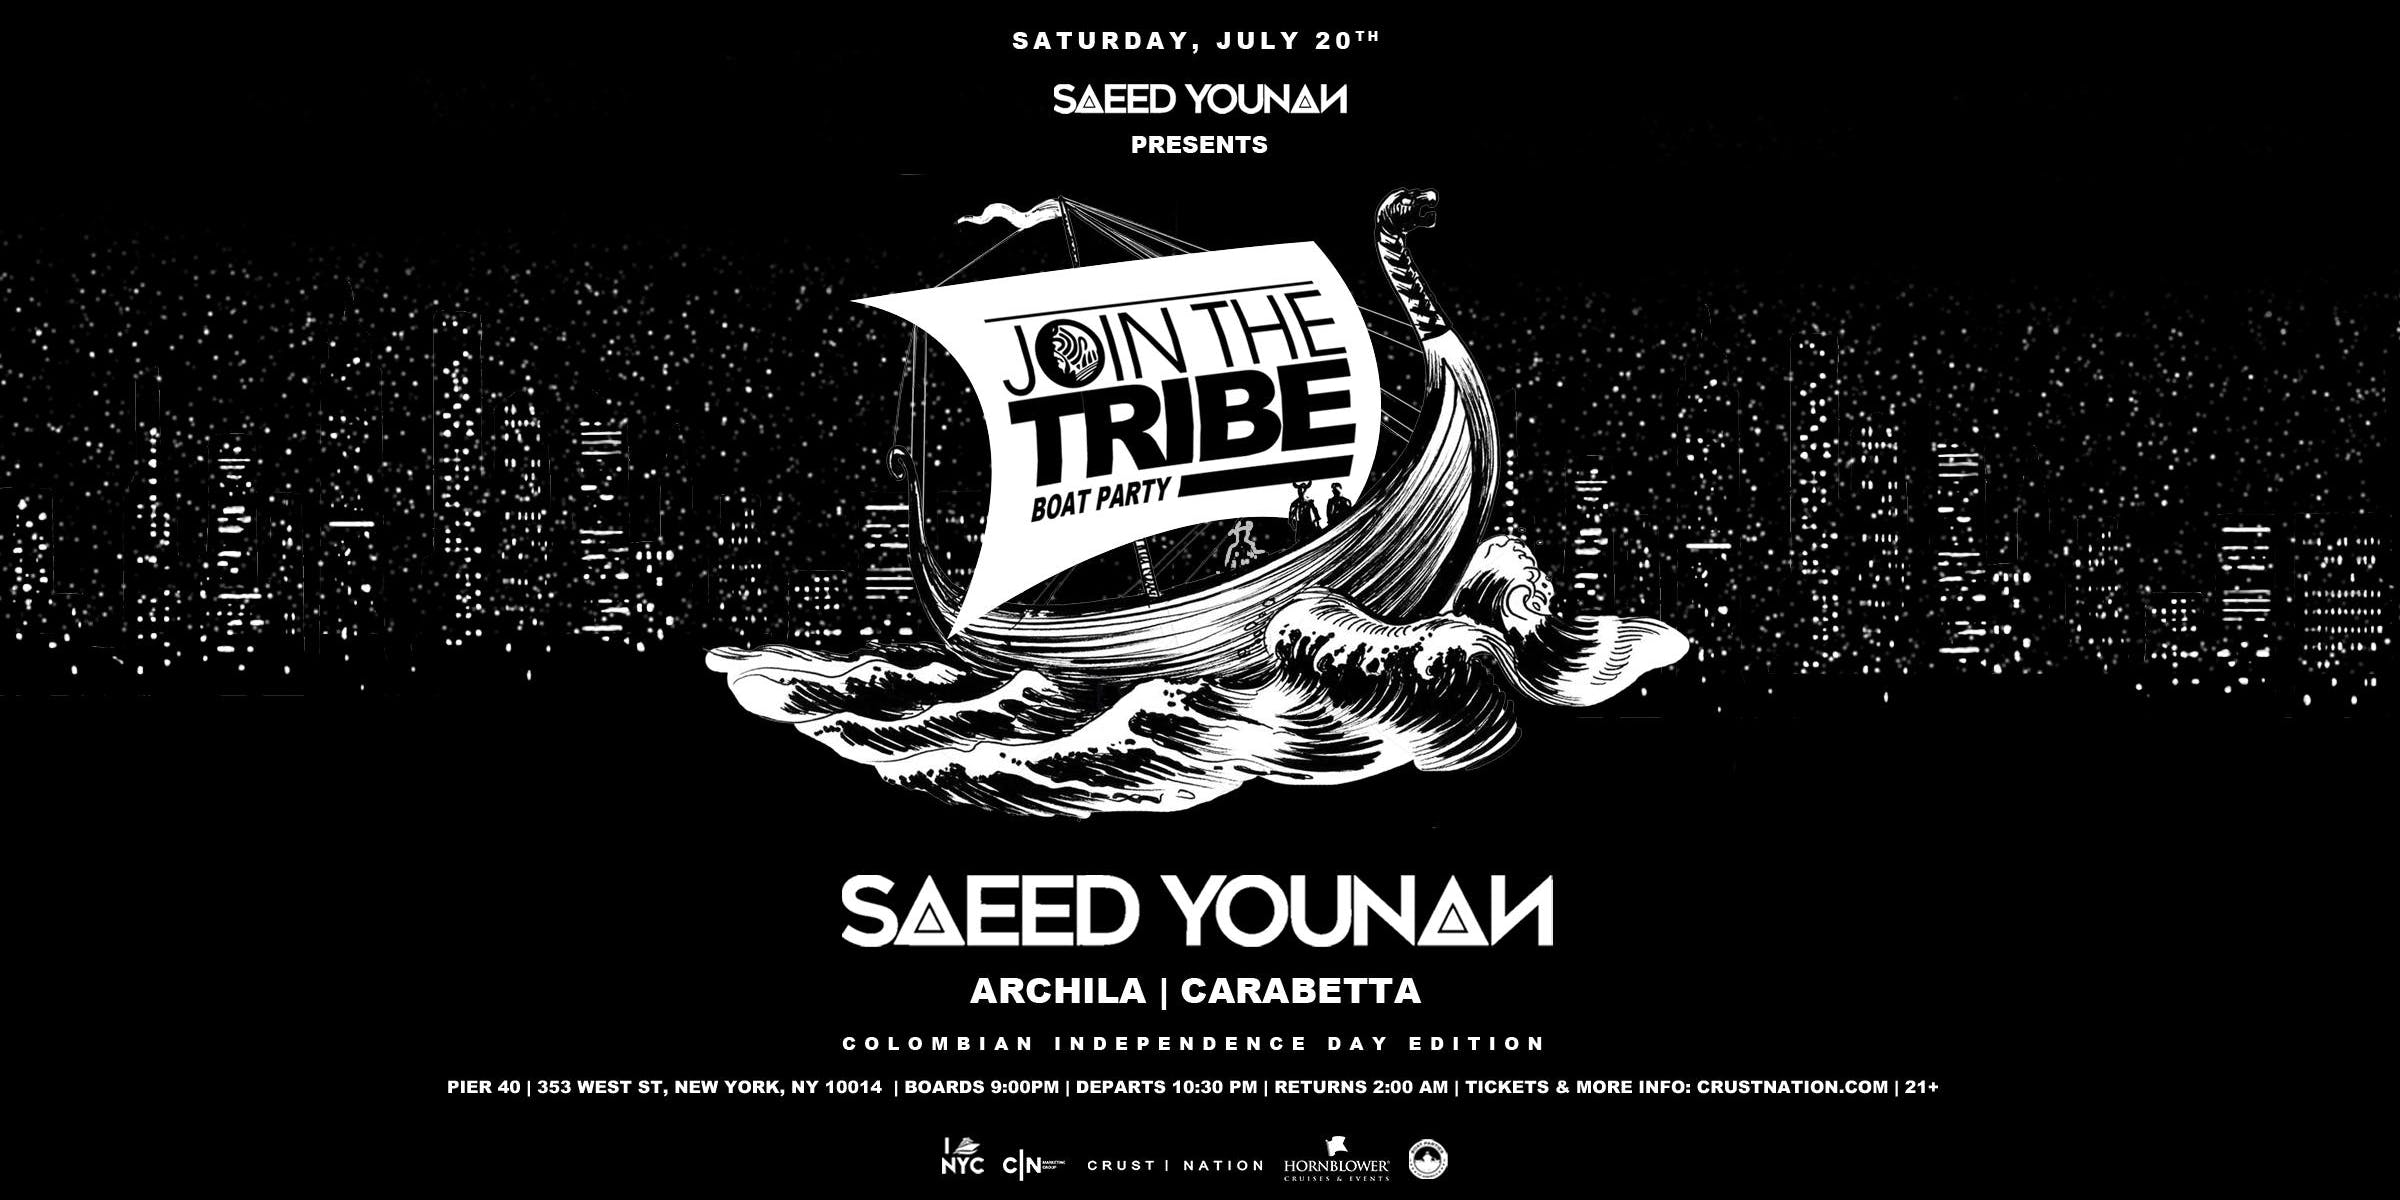 0743f81456 Join the Tribe Boat Party NYC Colombian Independence Day Yacht Cruise:  Saeed Younan